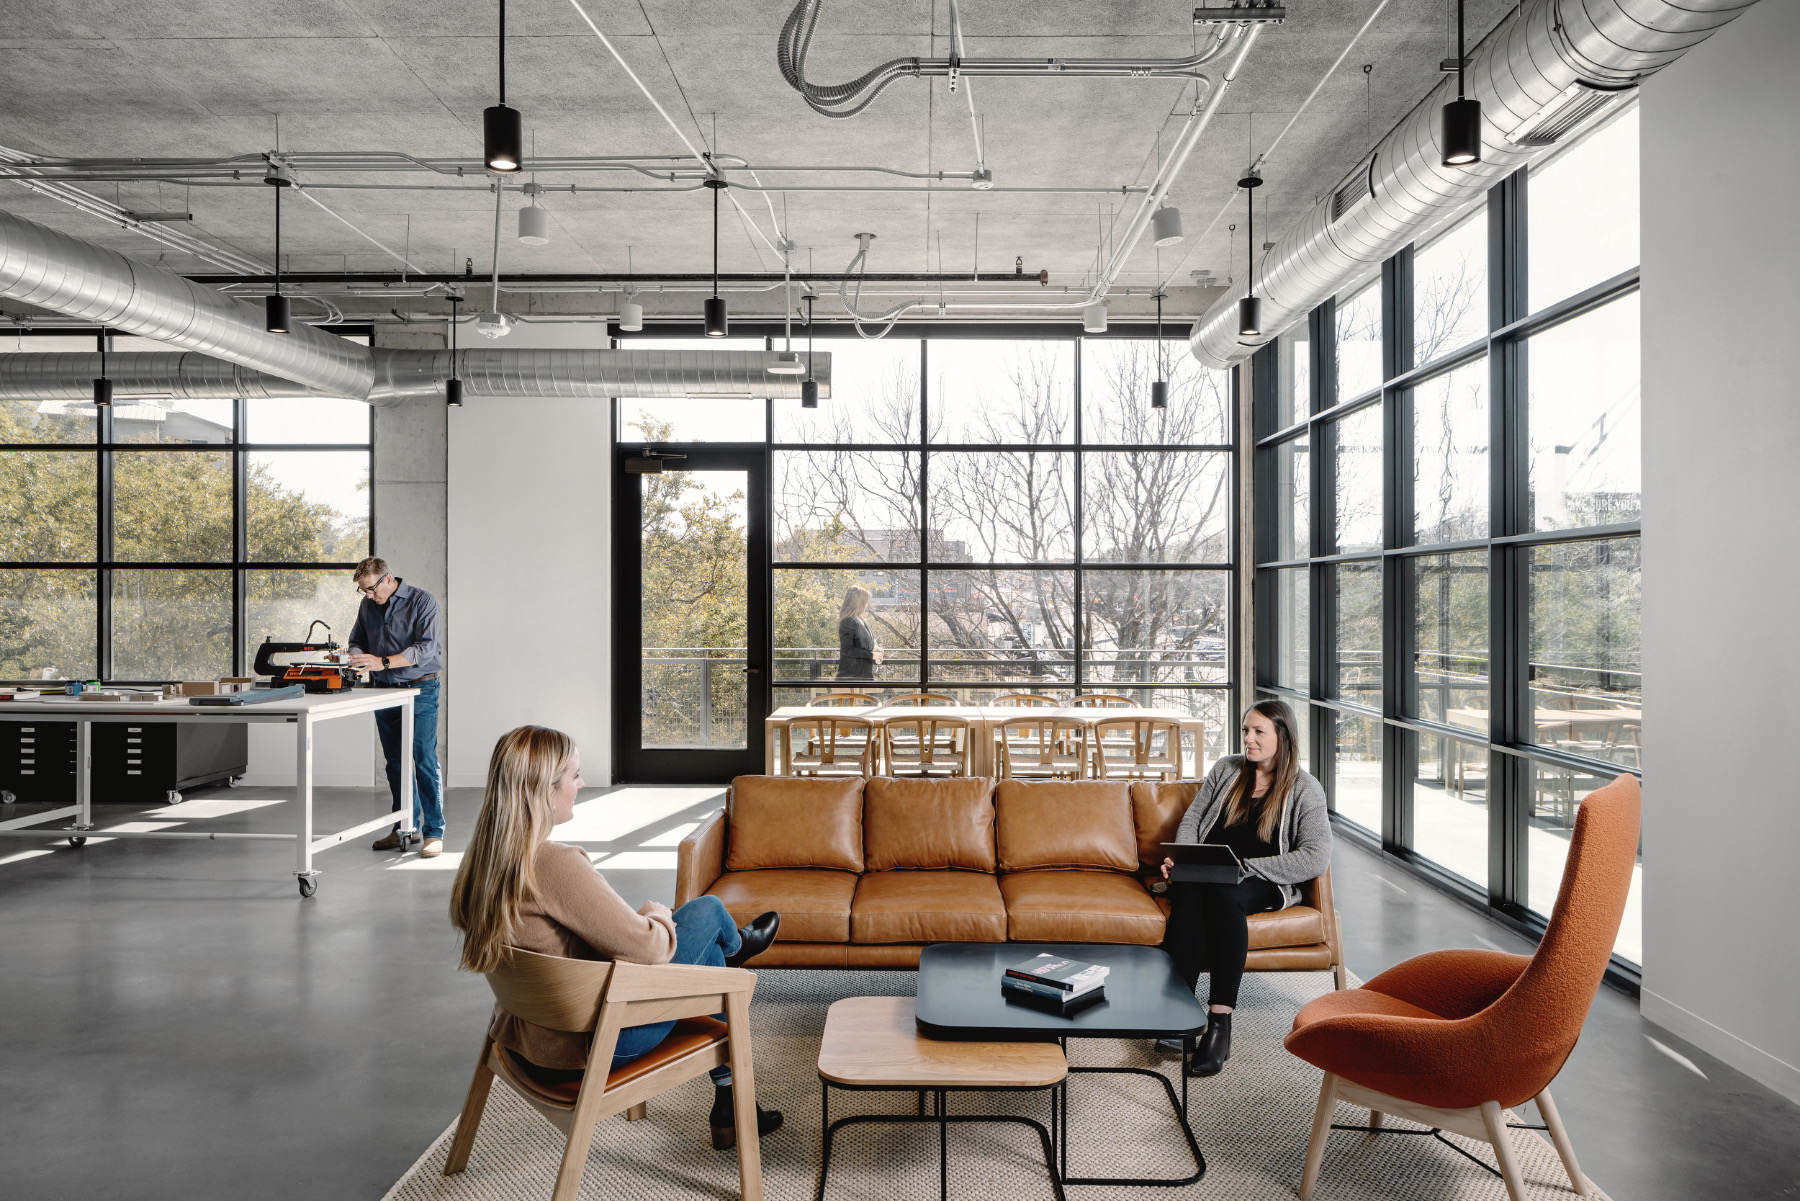 A Tour Of Frog Design's Sleek New Office In Austin